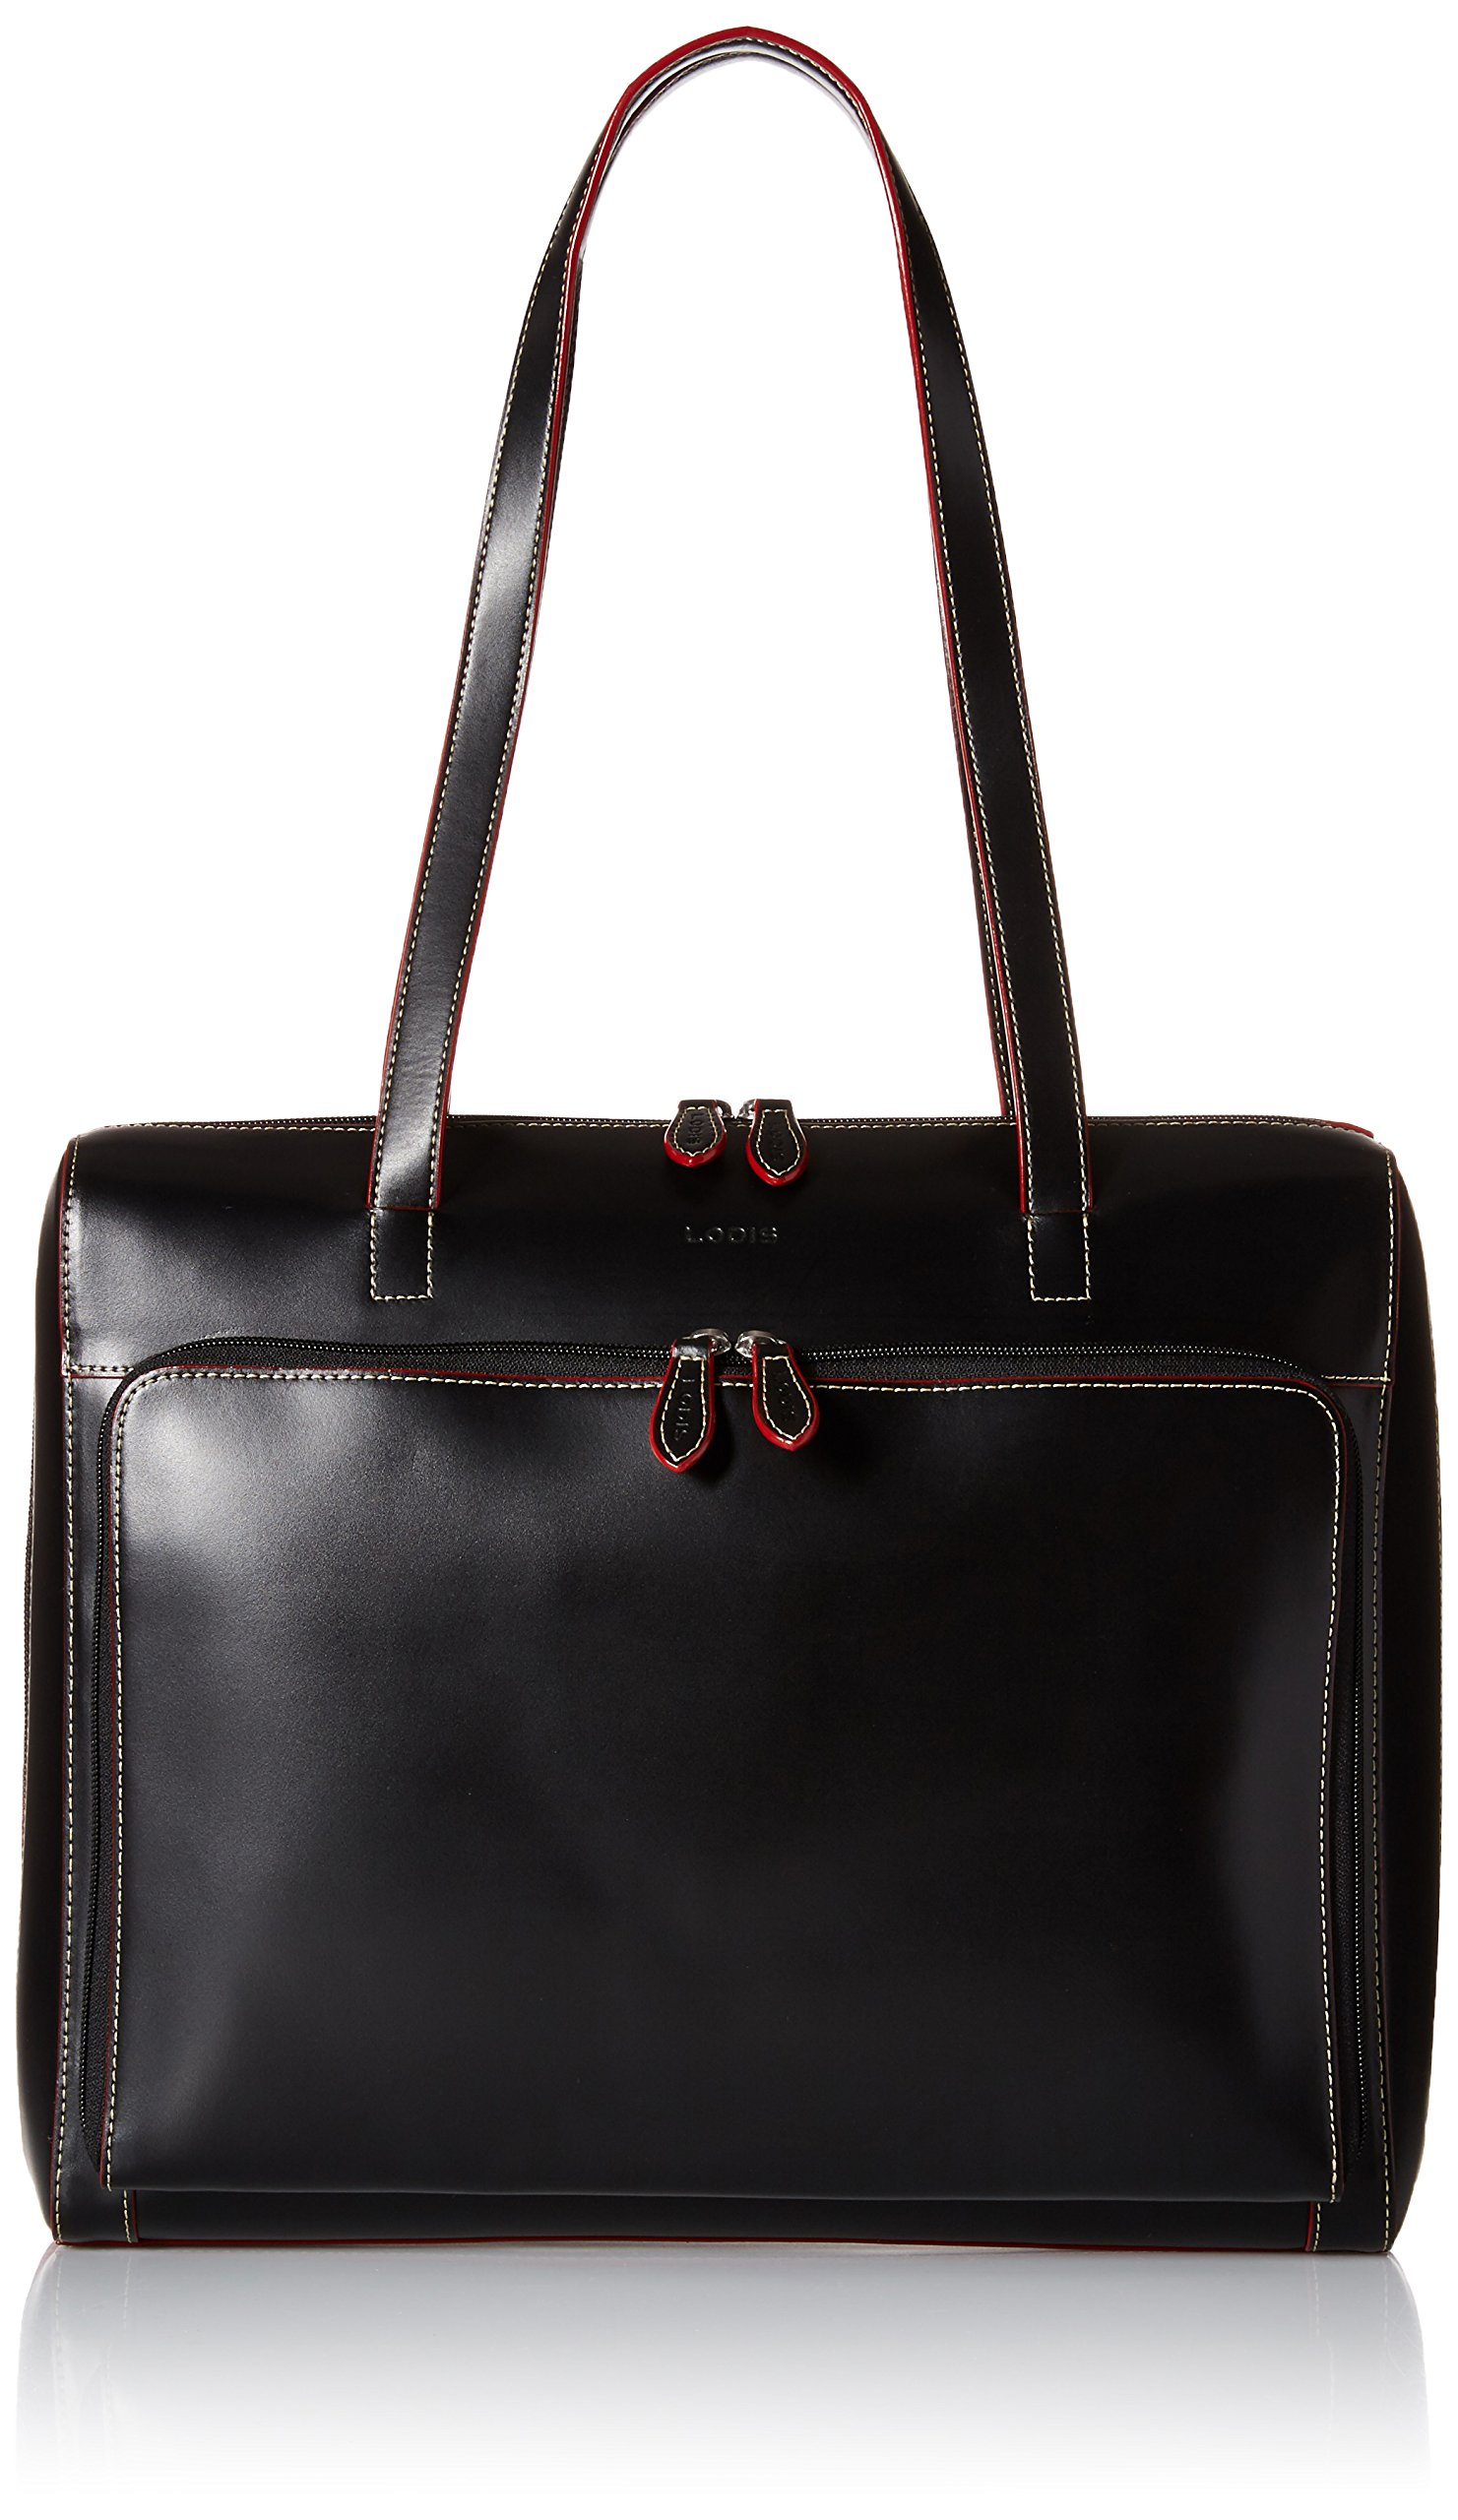 Lodis Audrey Zip Top Tote with Organization,Black,one size